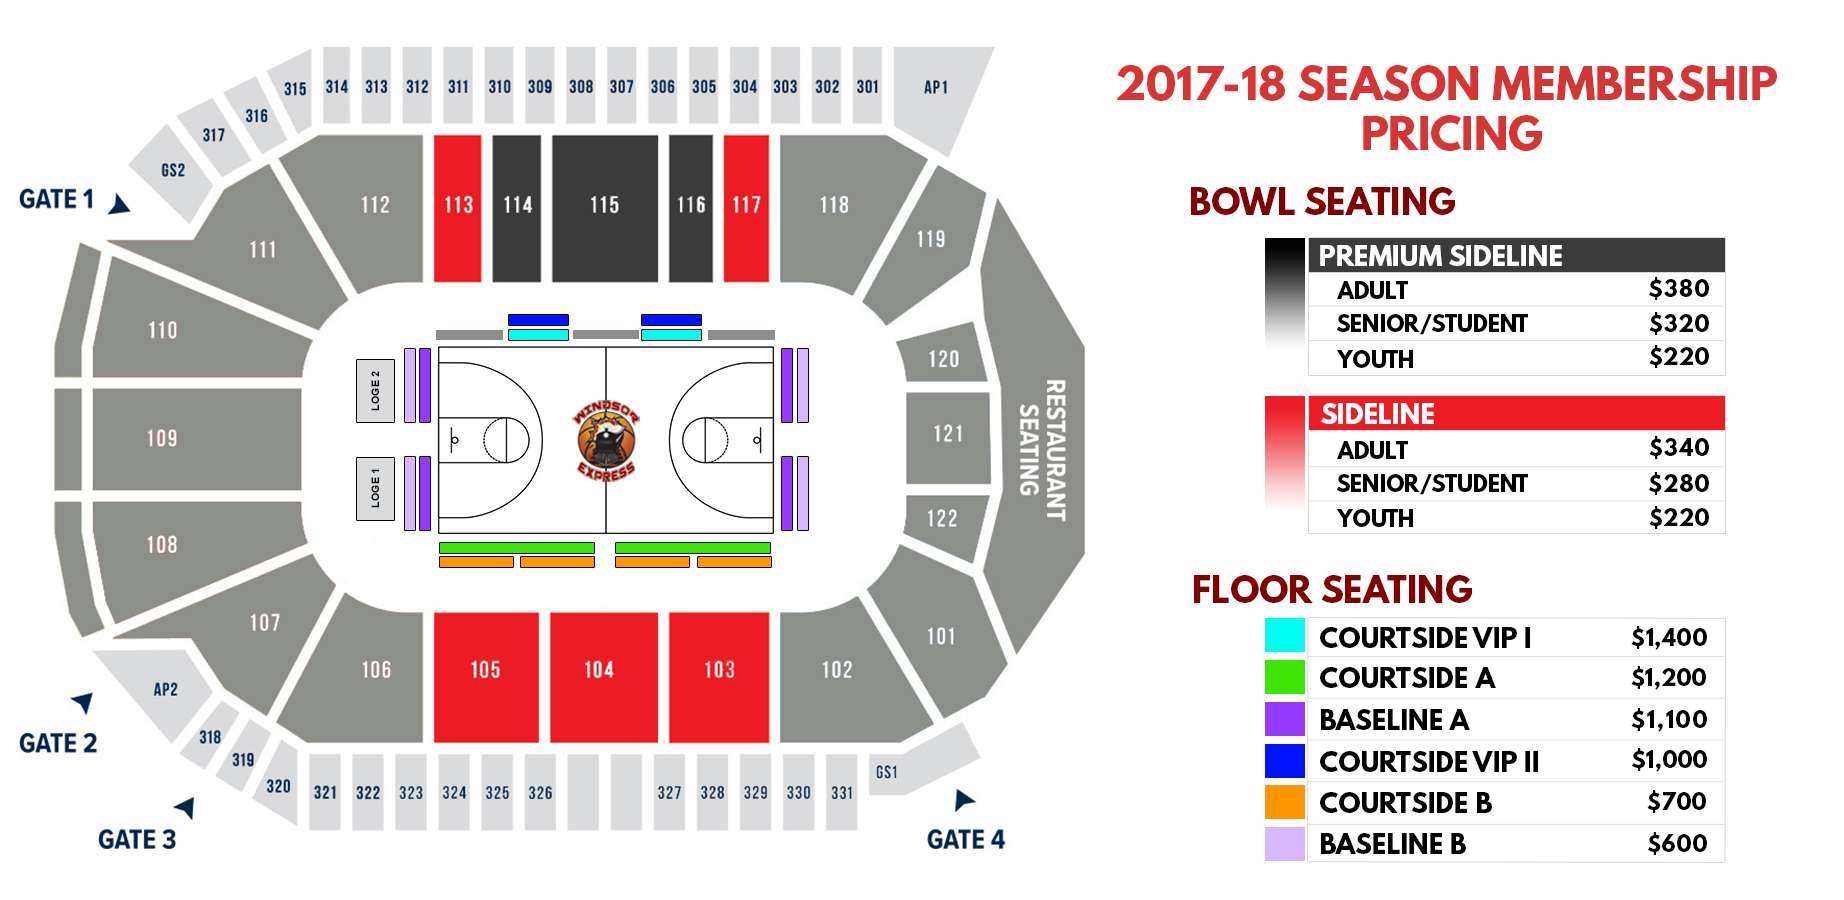 express-2016-17-seating-chart-900pxjpg